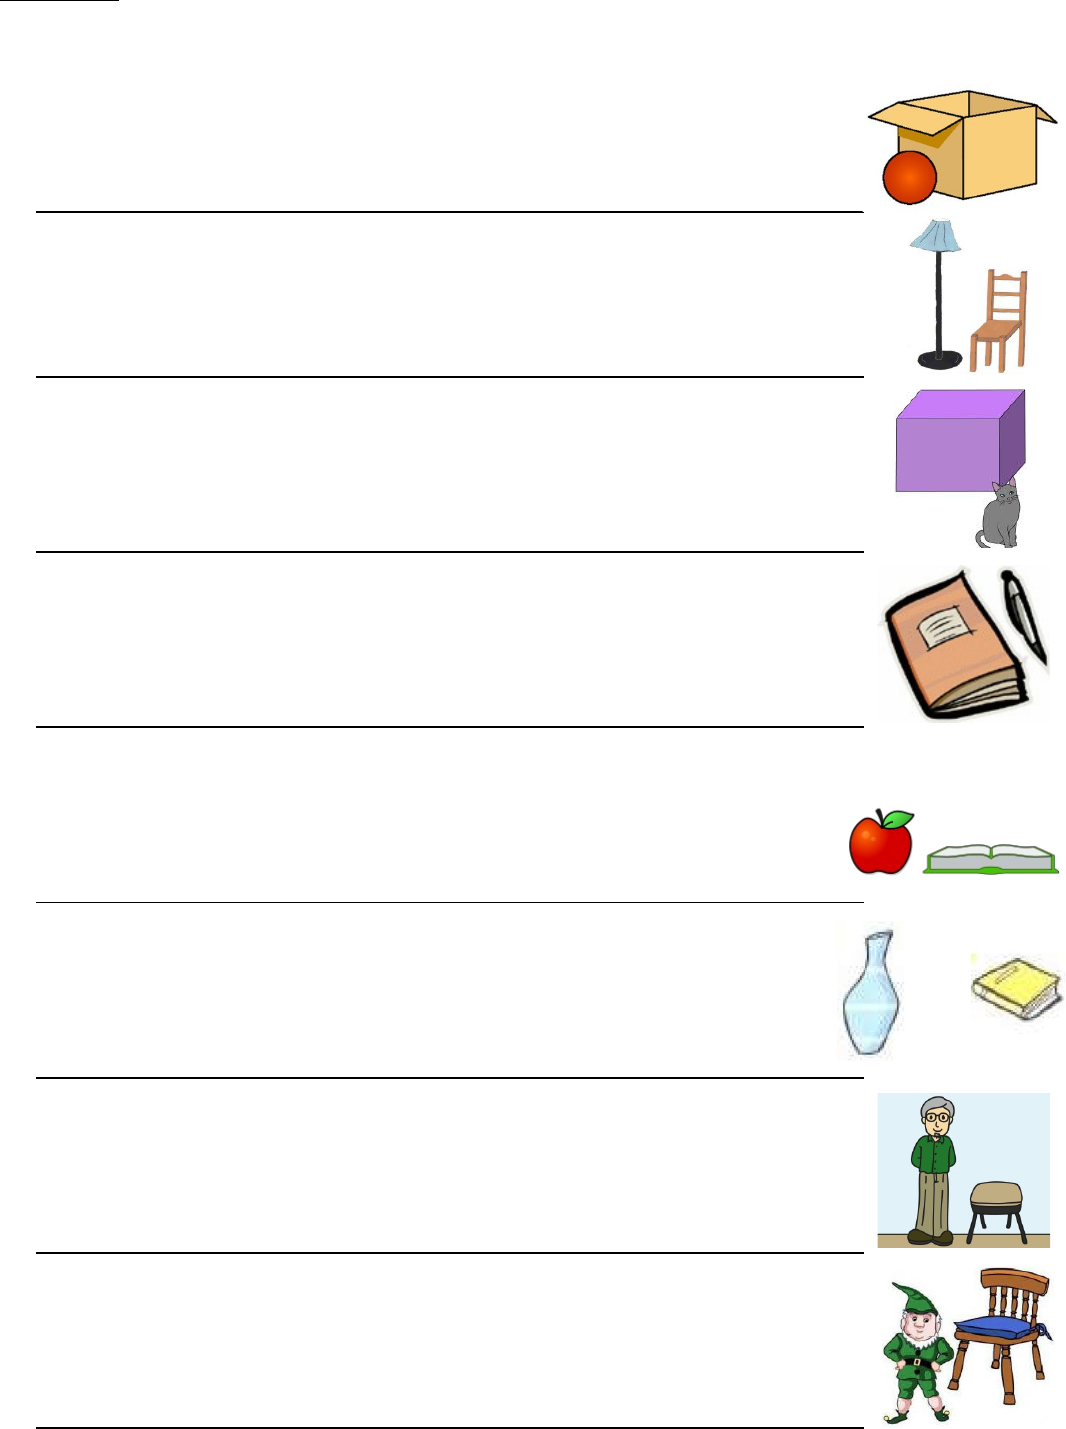 English Year 4 KSSR - Grammar: Prepositions (Worksheet)